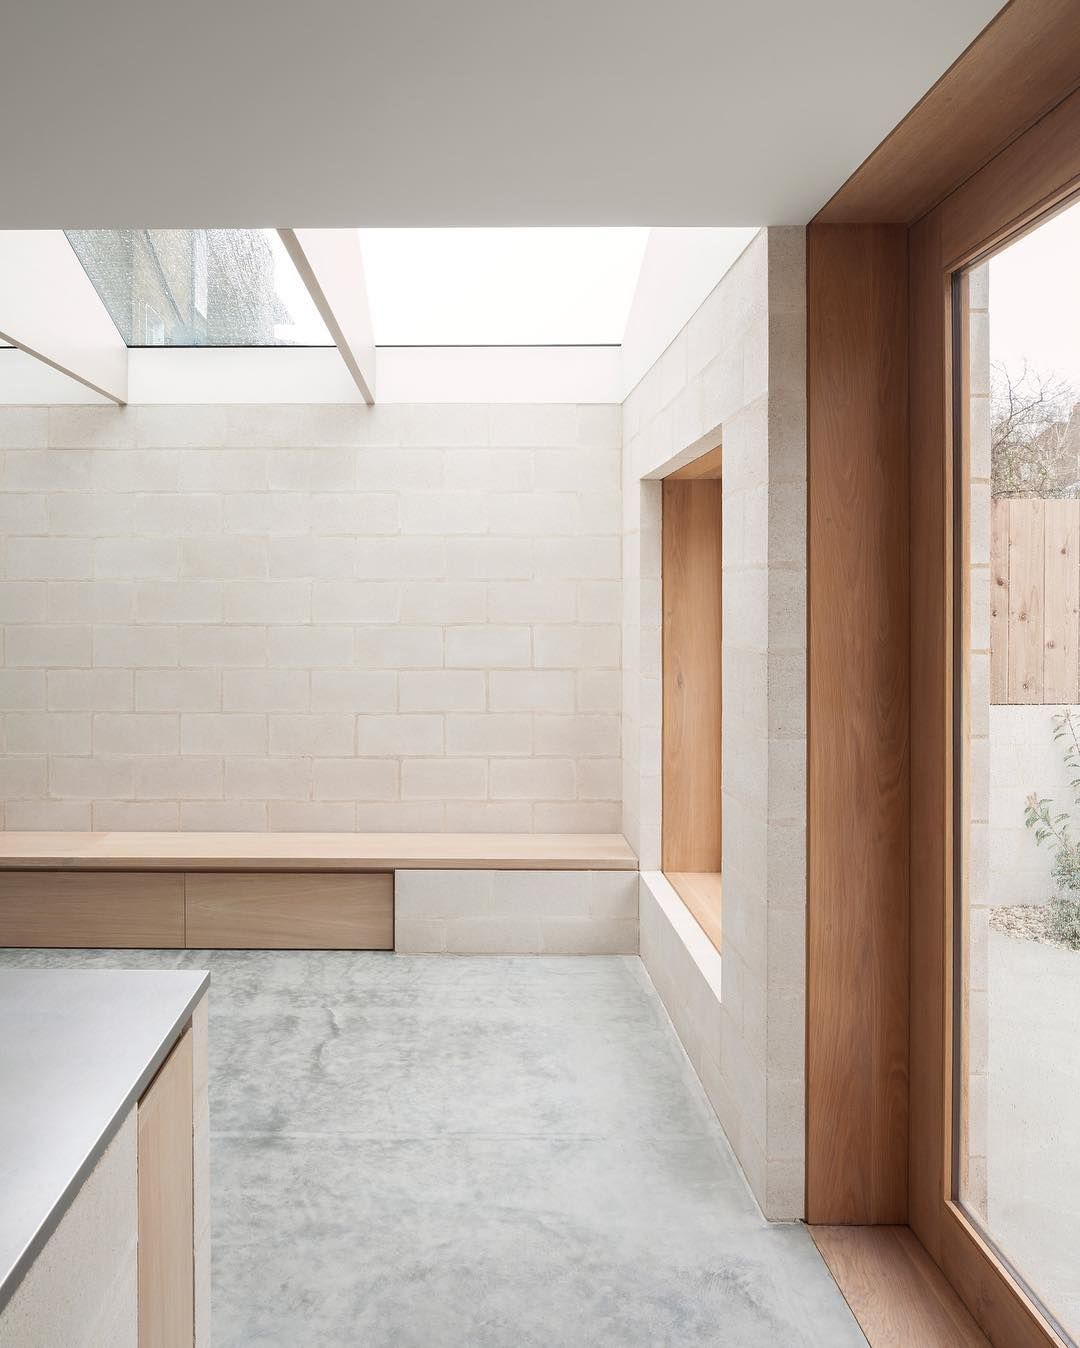 Aljawadpikes extension of a victorian house in peckham london how beautiful is the exposed pigmented concrete blockwork like very